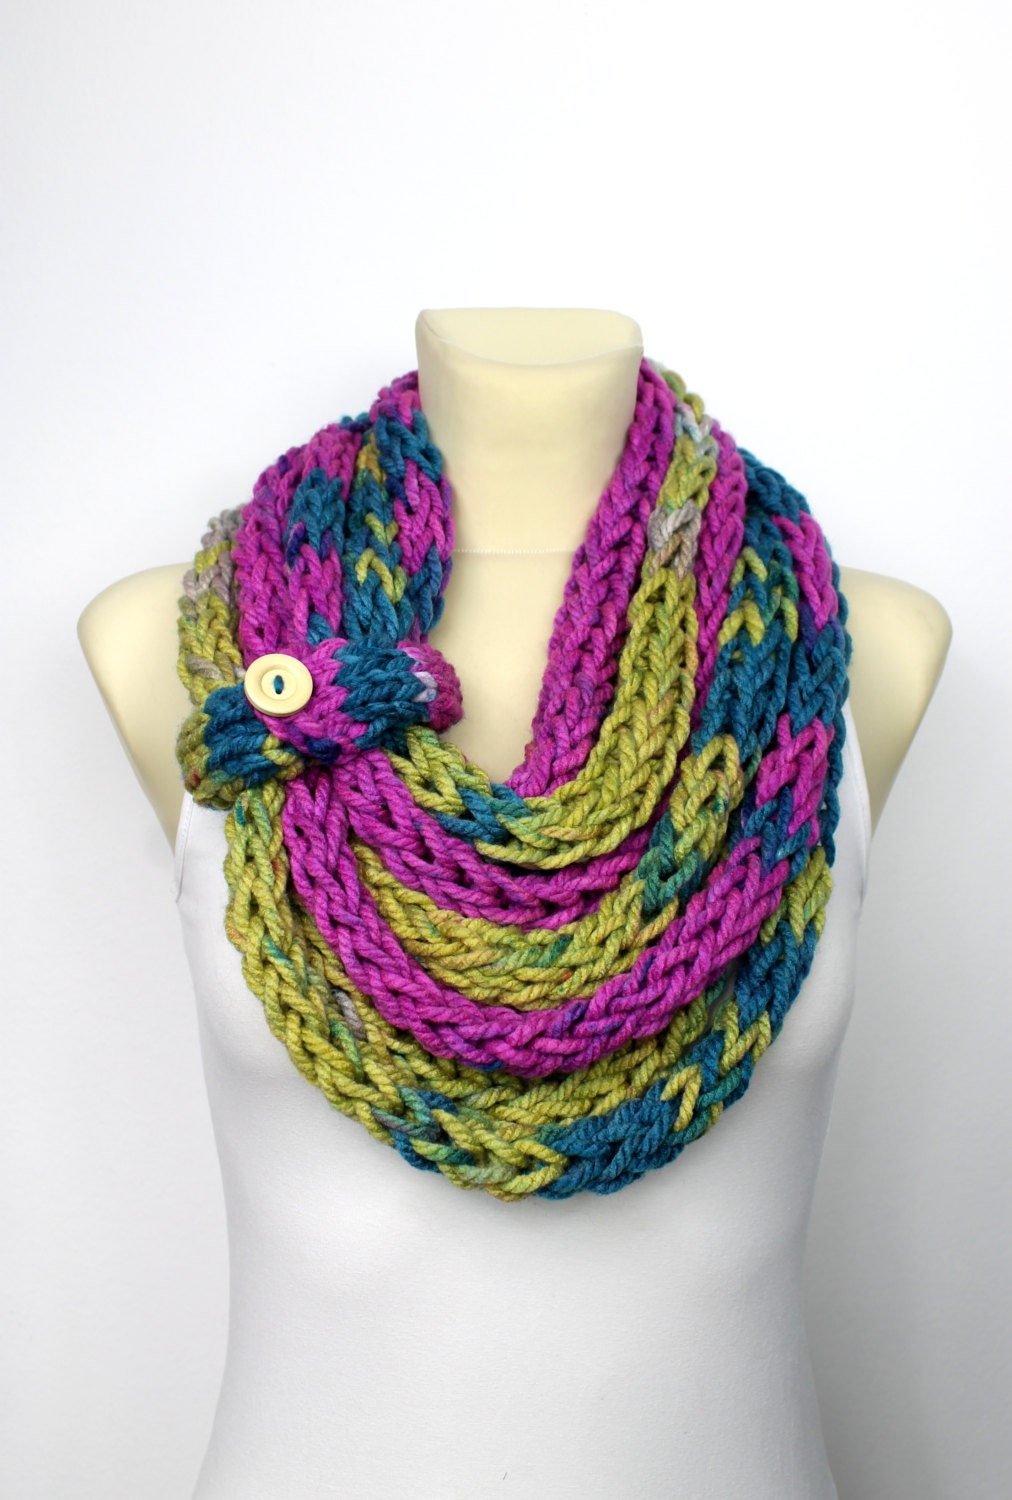 Knit Cowl Scarf Knit Infinity Scarf Knitted Loop Scarf